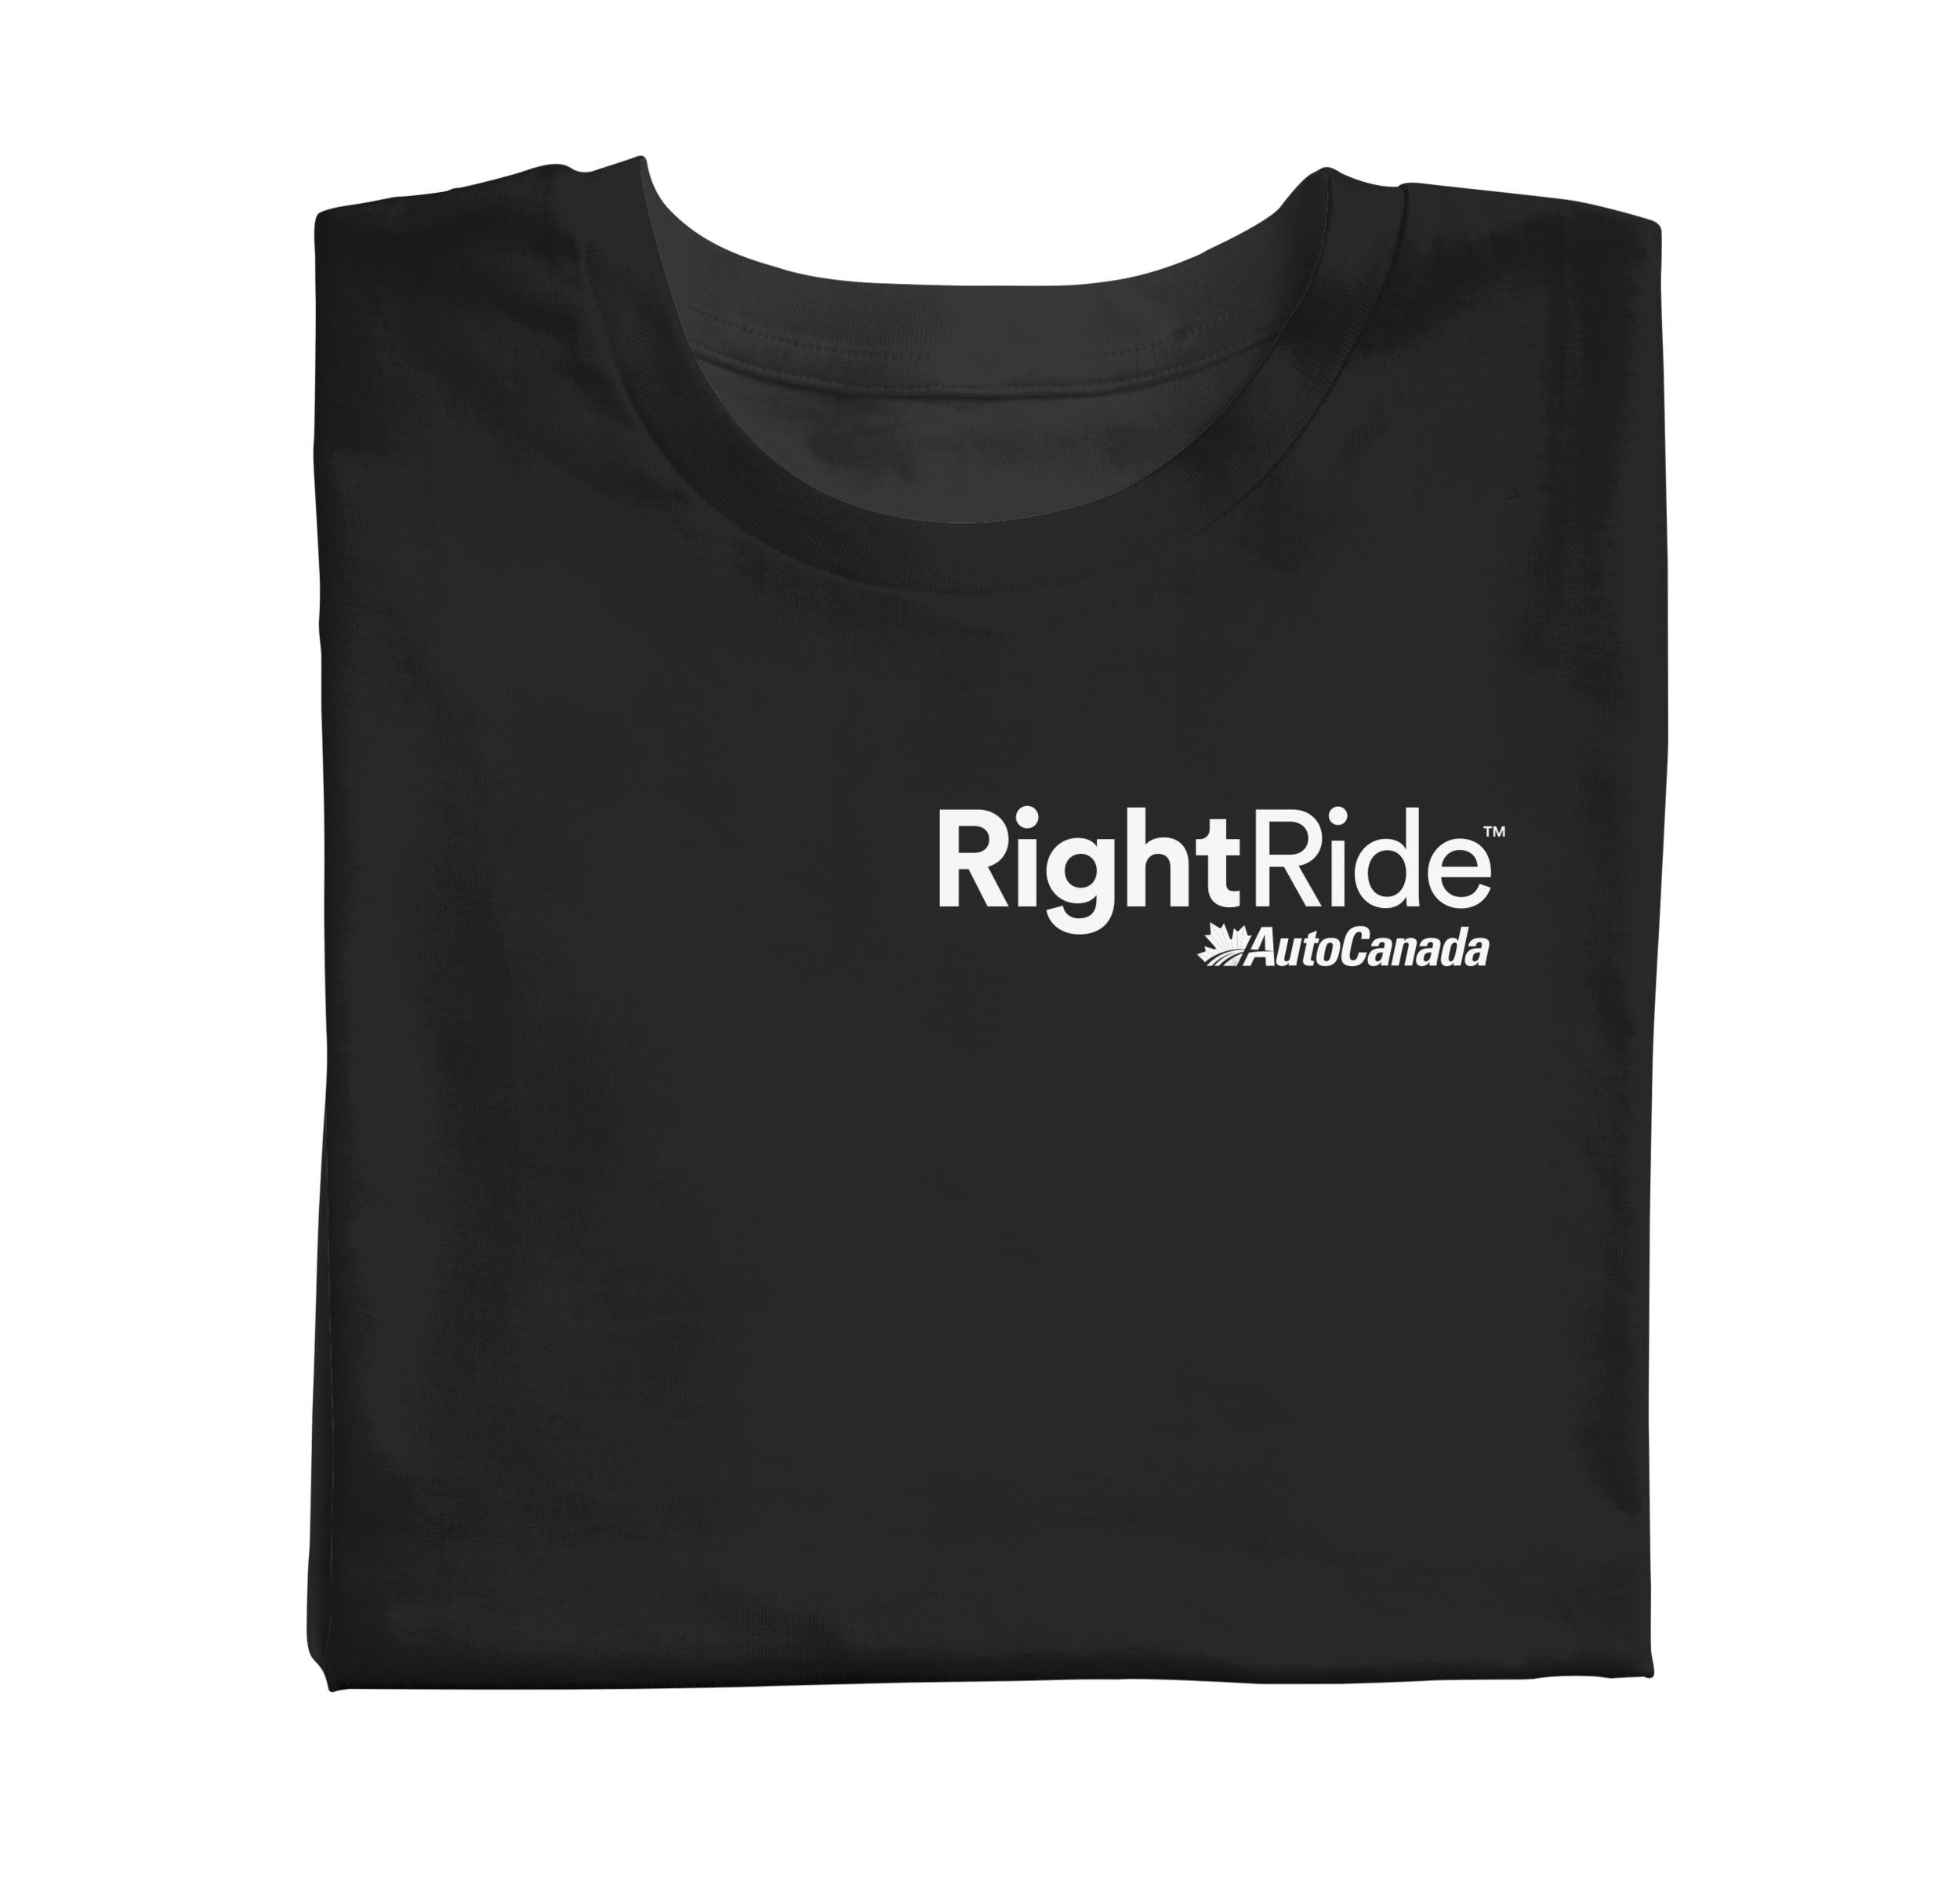 RightRide_Shirt.png